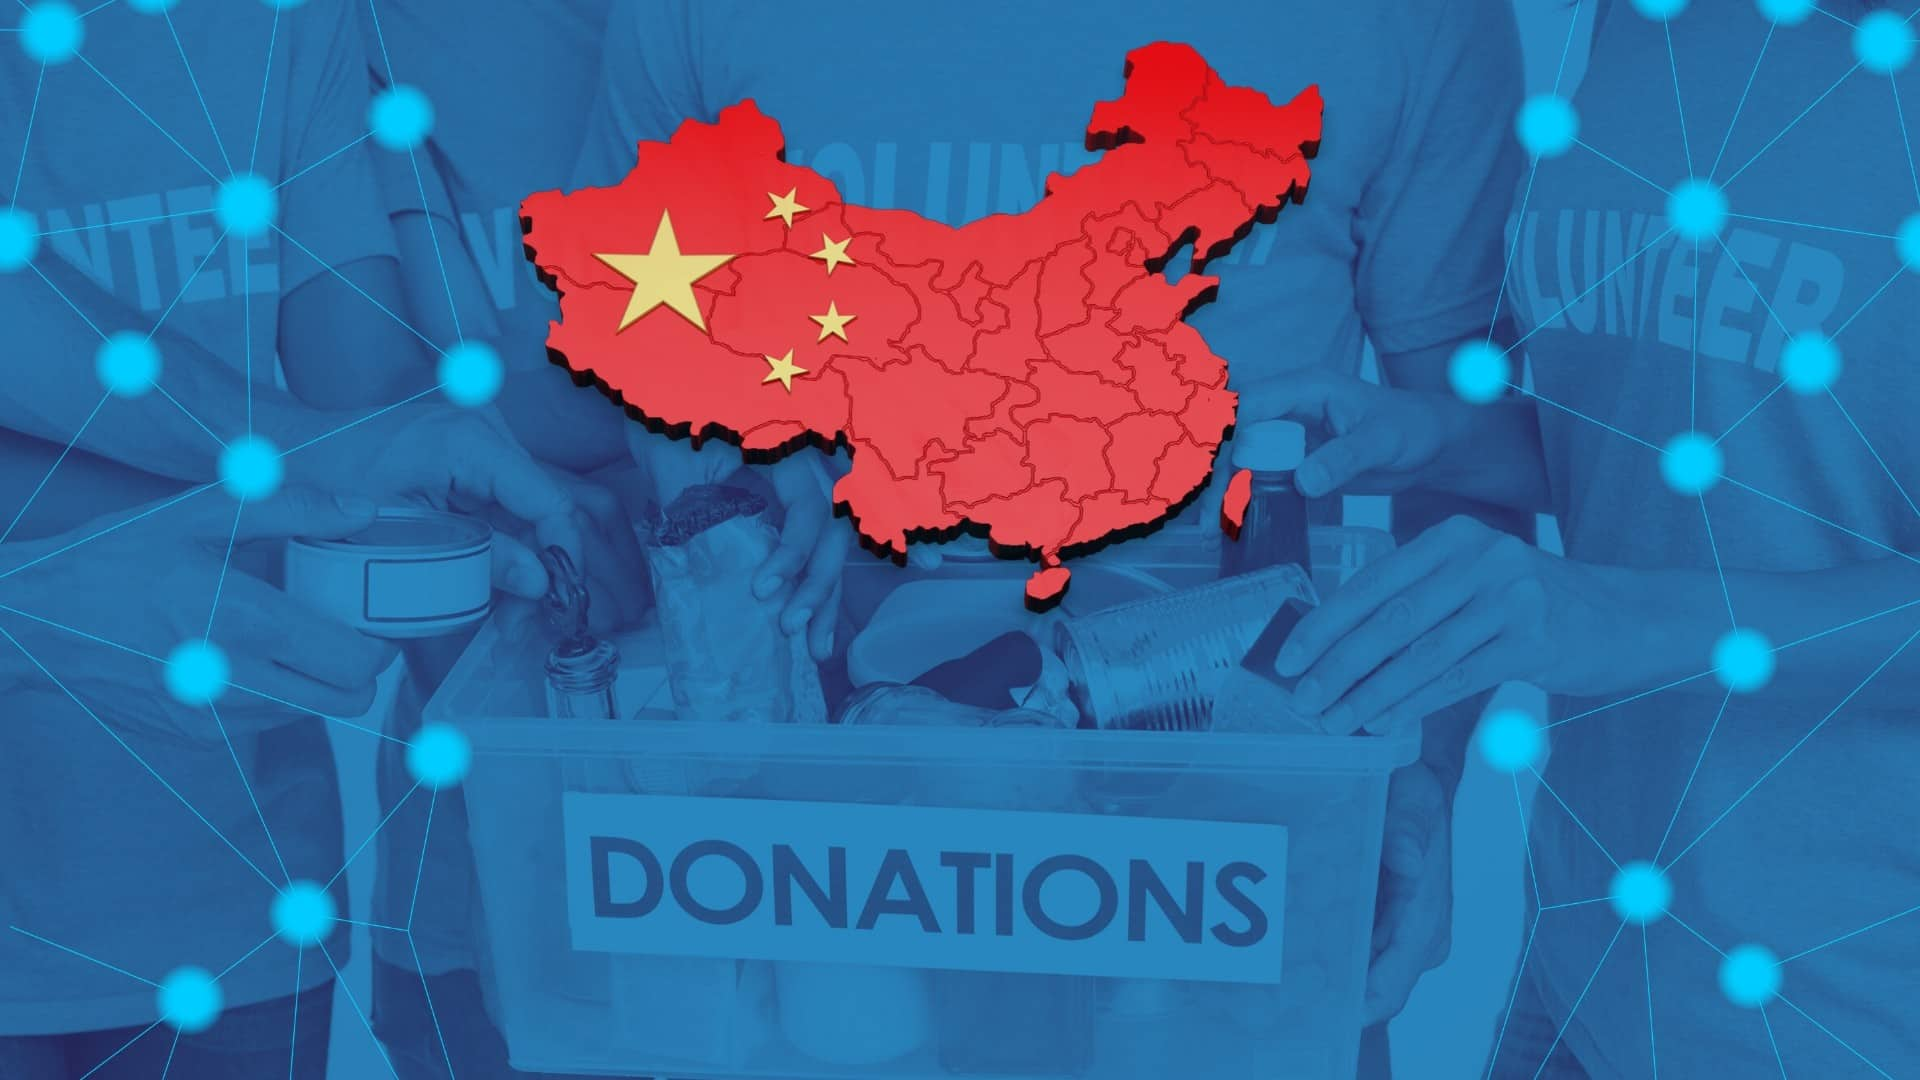 China Startup Launches Blockchain to Aid Charities Make Donations Efficiently